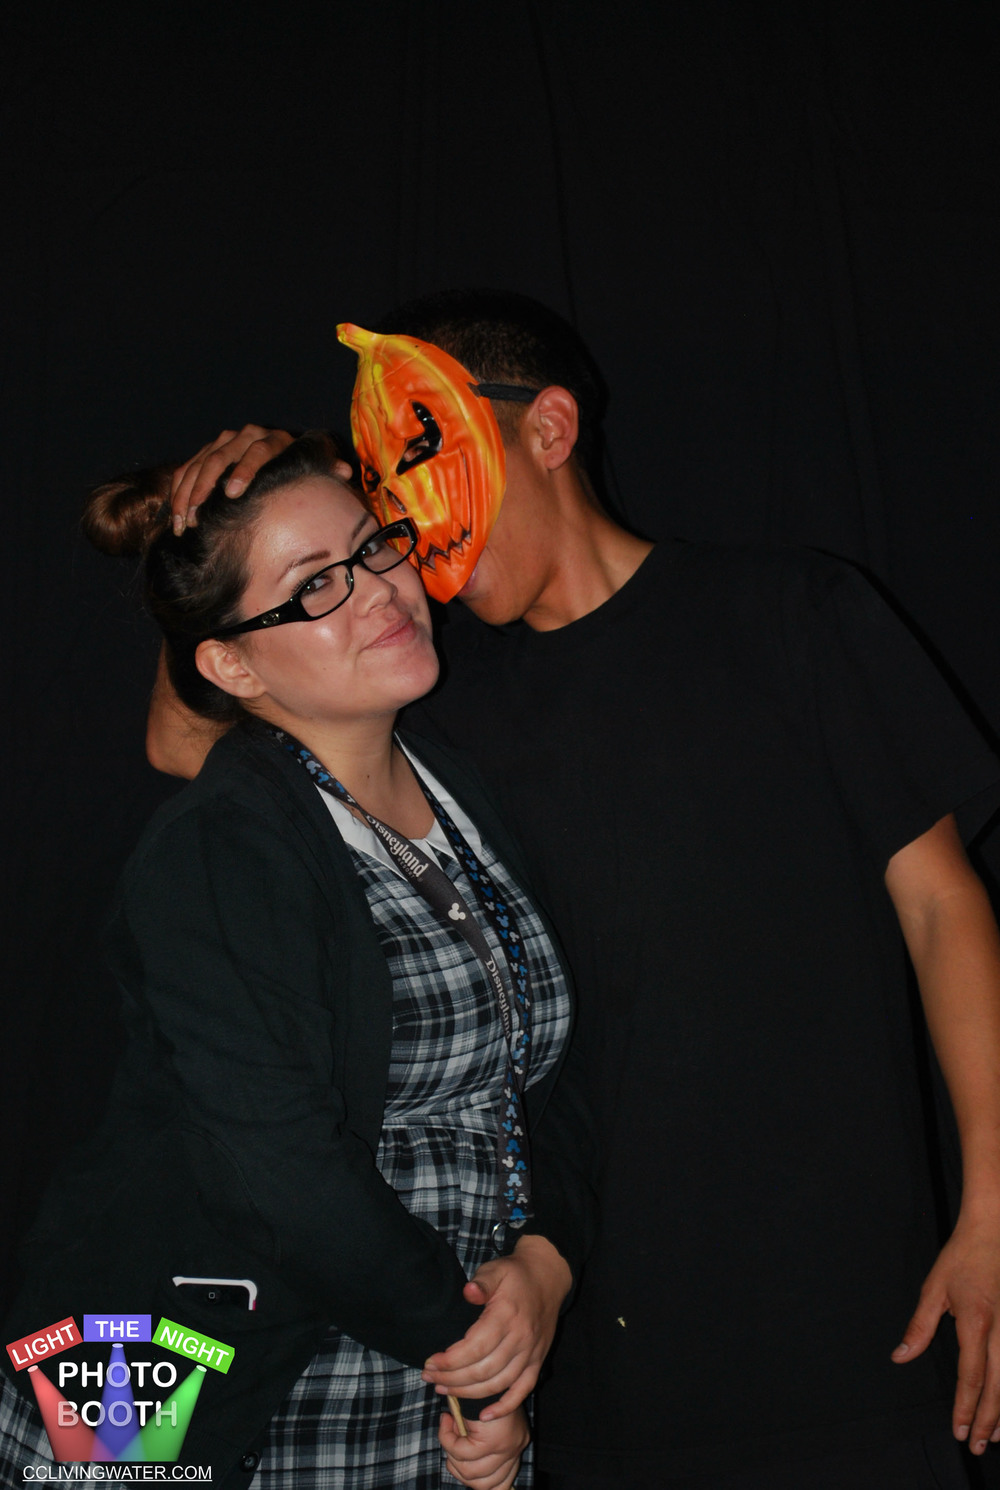 2014-10 - Light The Night Photo Booth (149) copy.jpg